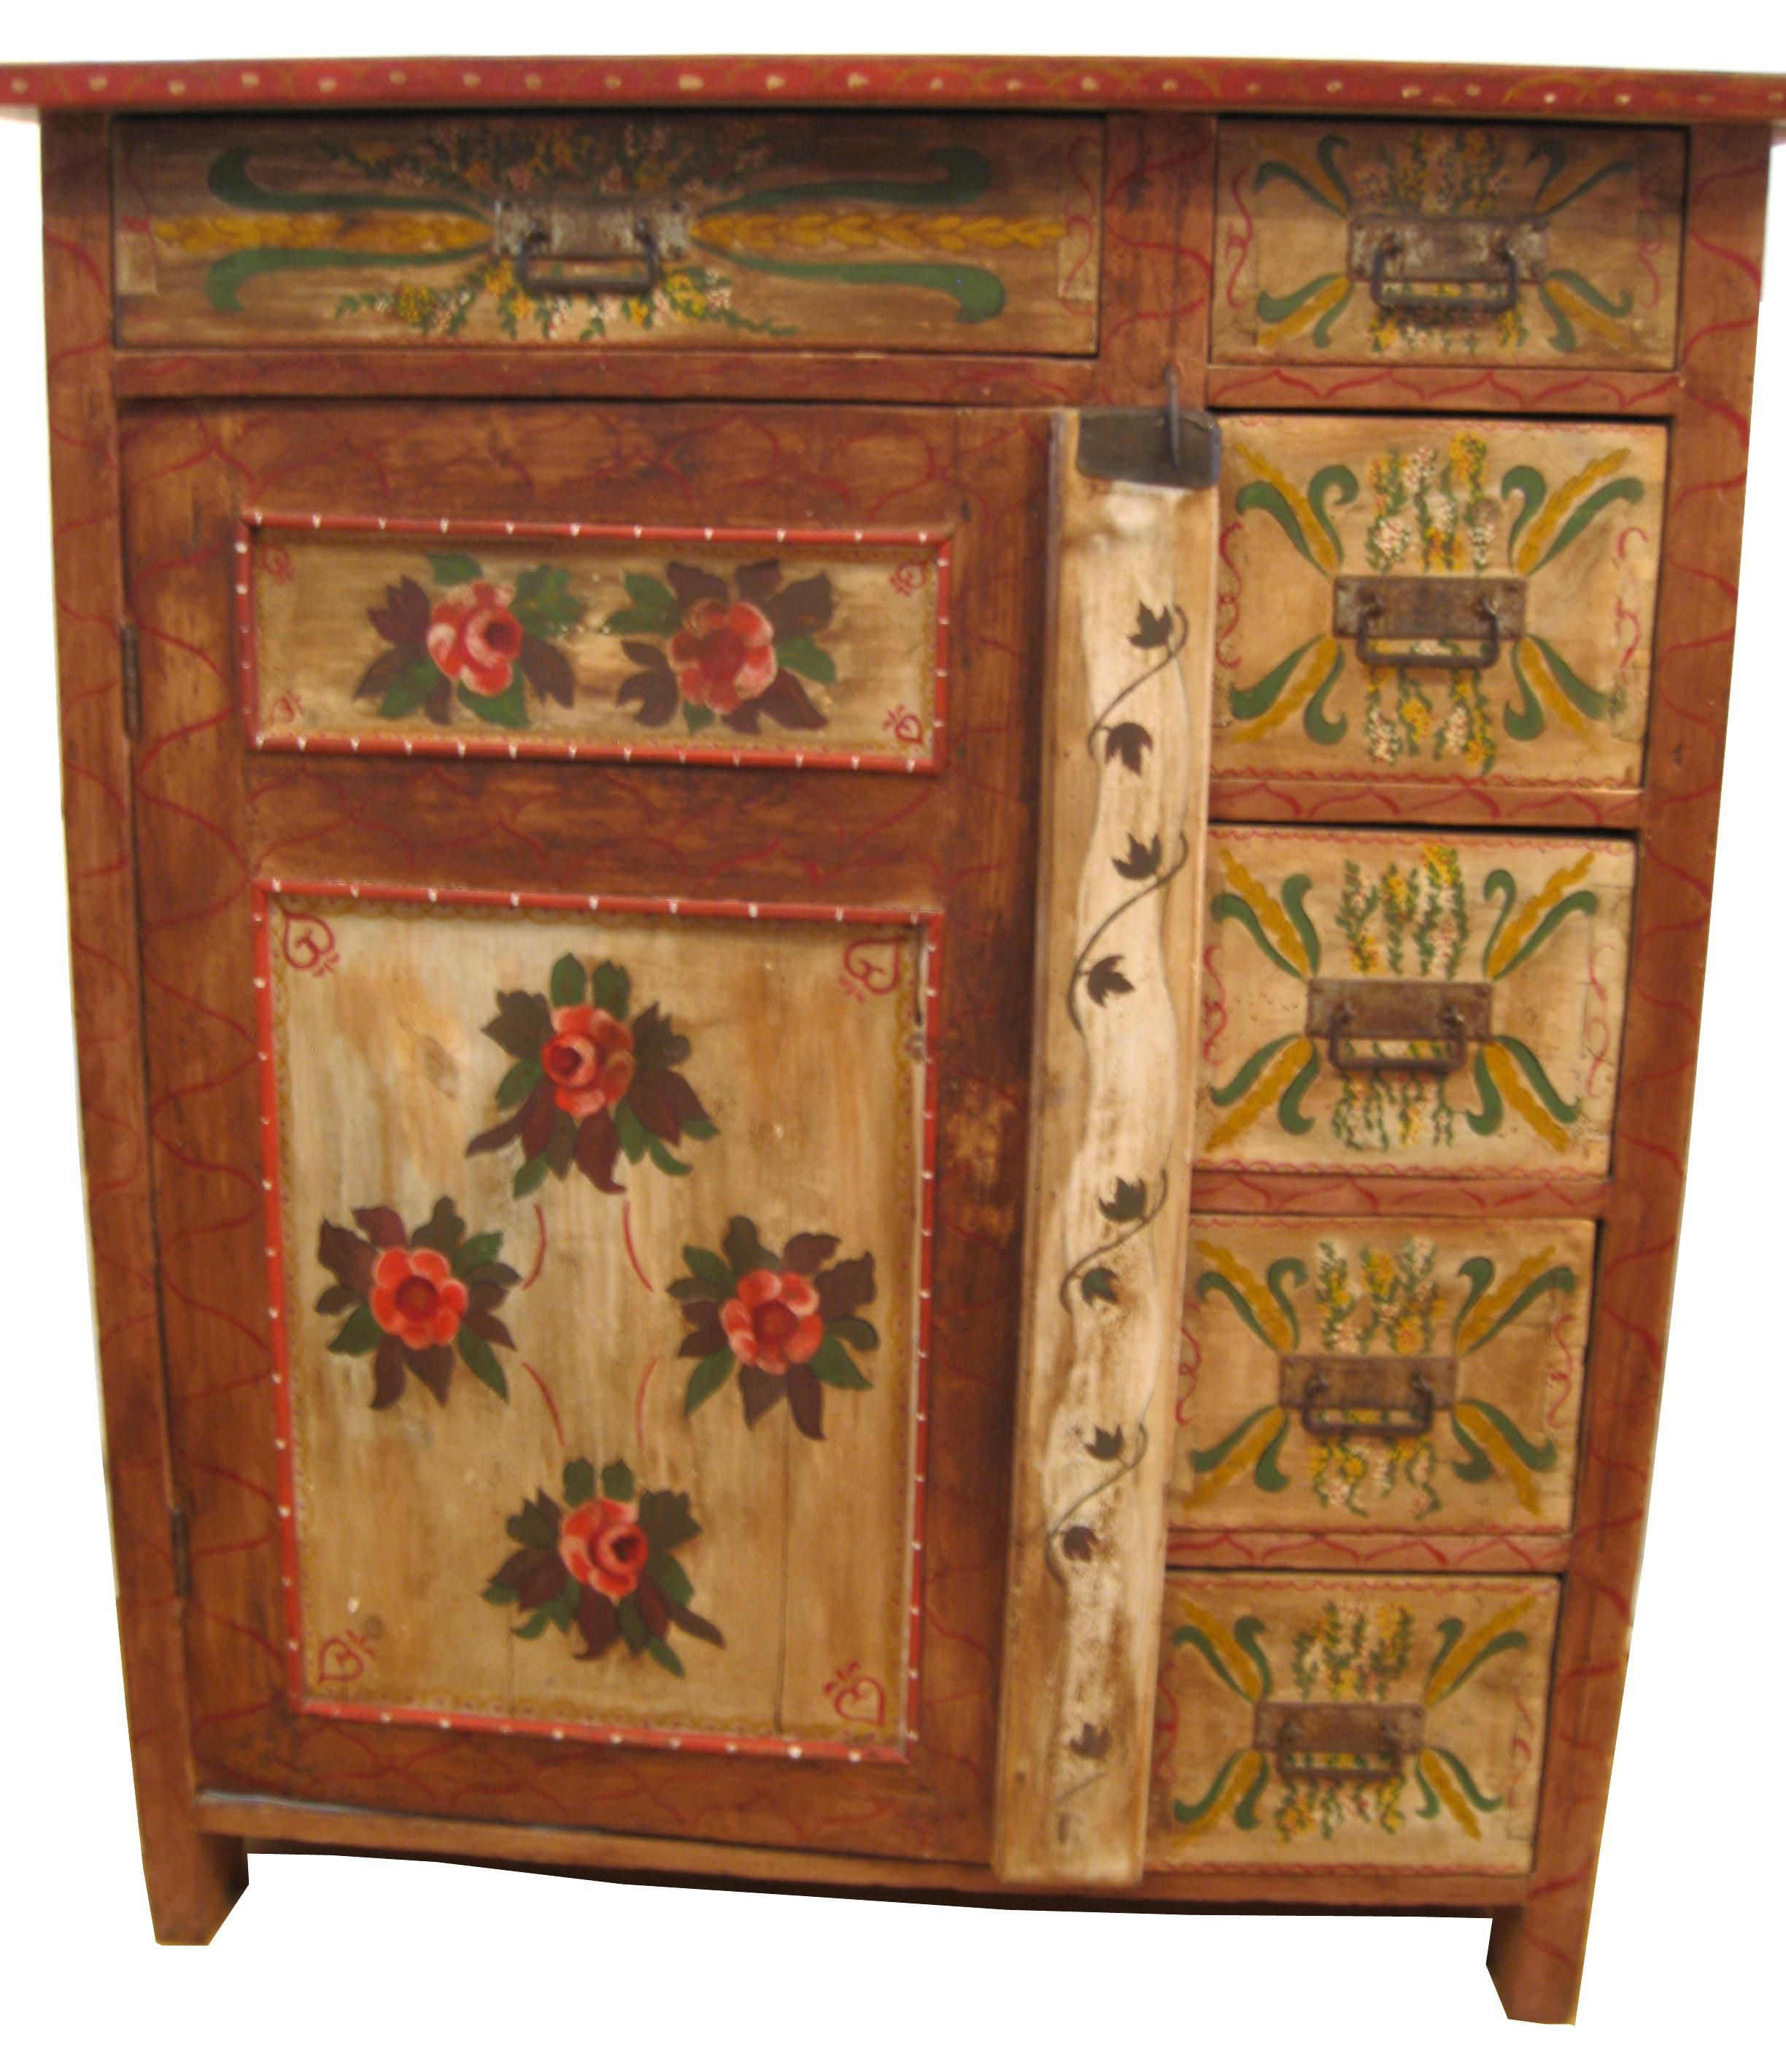 1880s Painted Pennsylvania Dutch Cabinet. 1880s Painted Pennsylvania Dutch Cabinet   Pennsylvania dutch